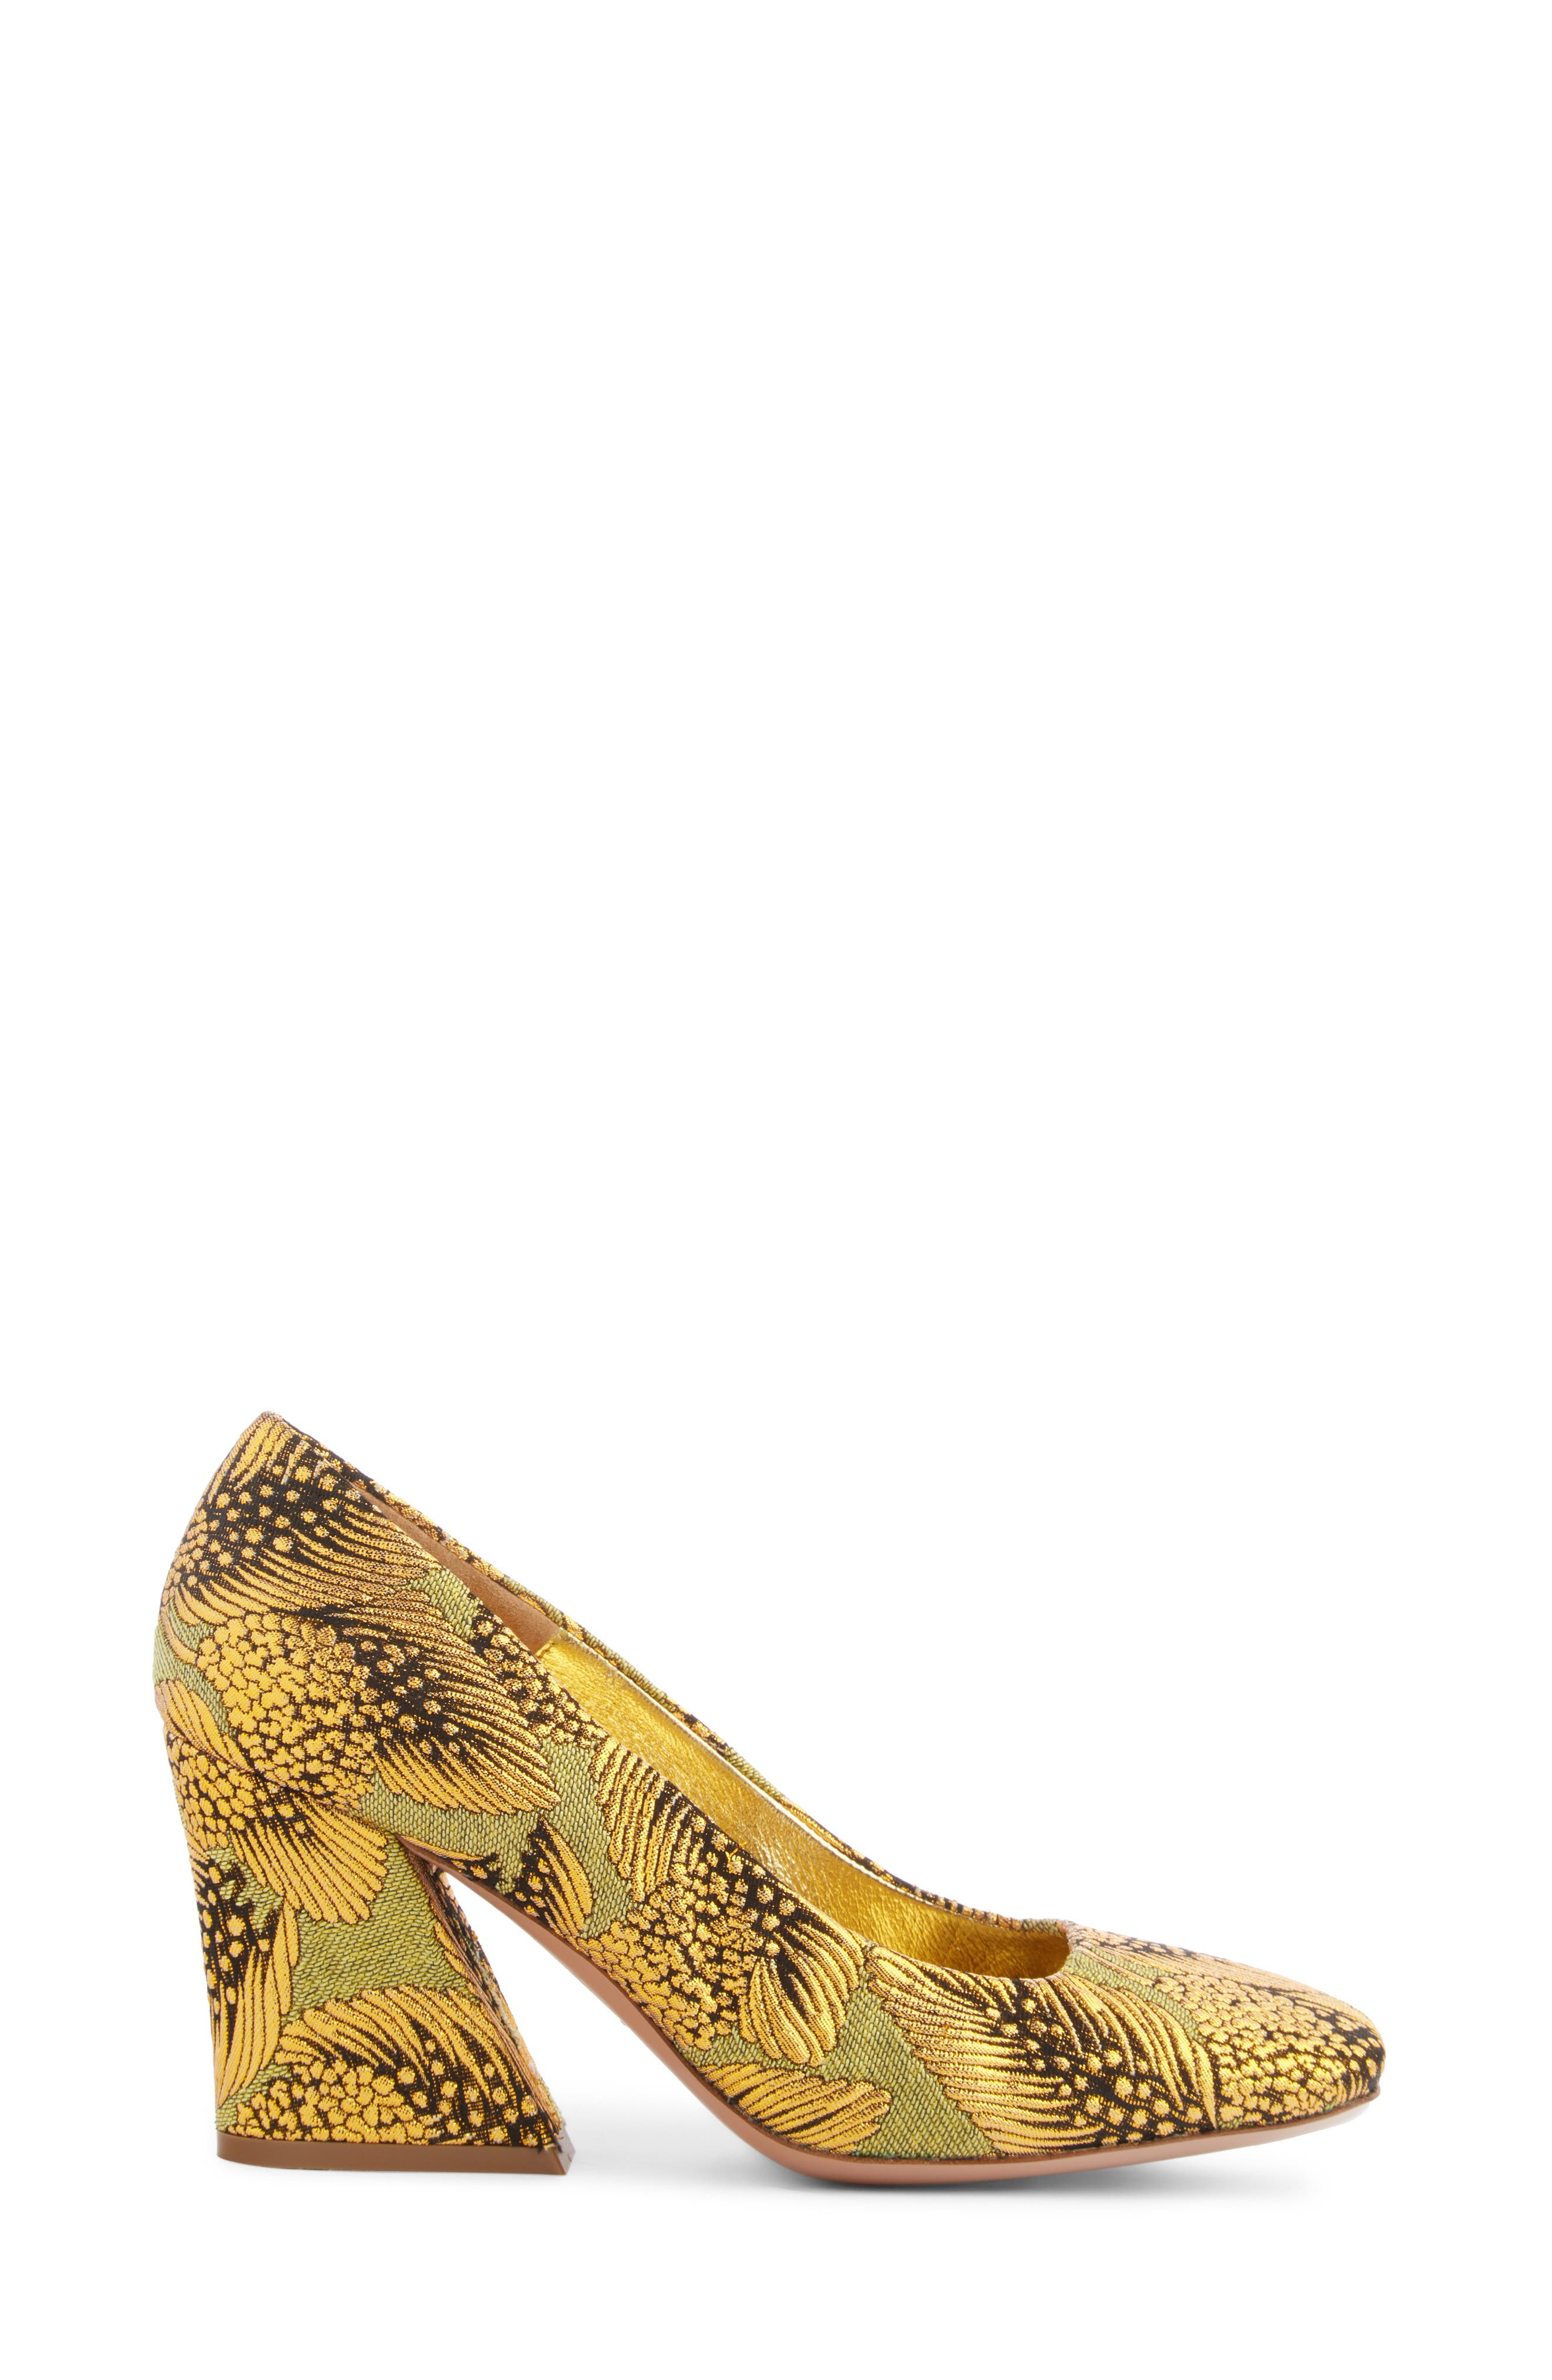 Leaf Print Angle Heel Pump,                             Alternate thumbnail 3, color,                             710